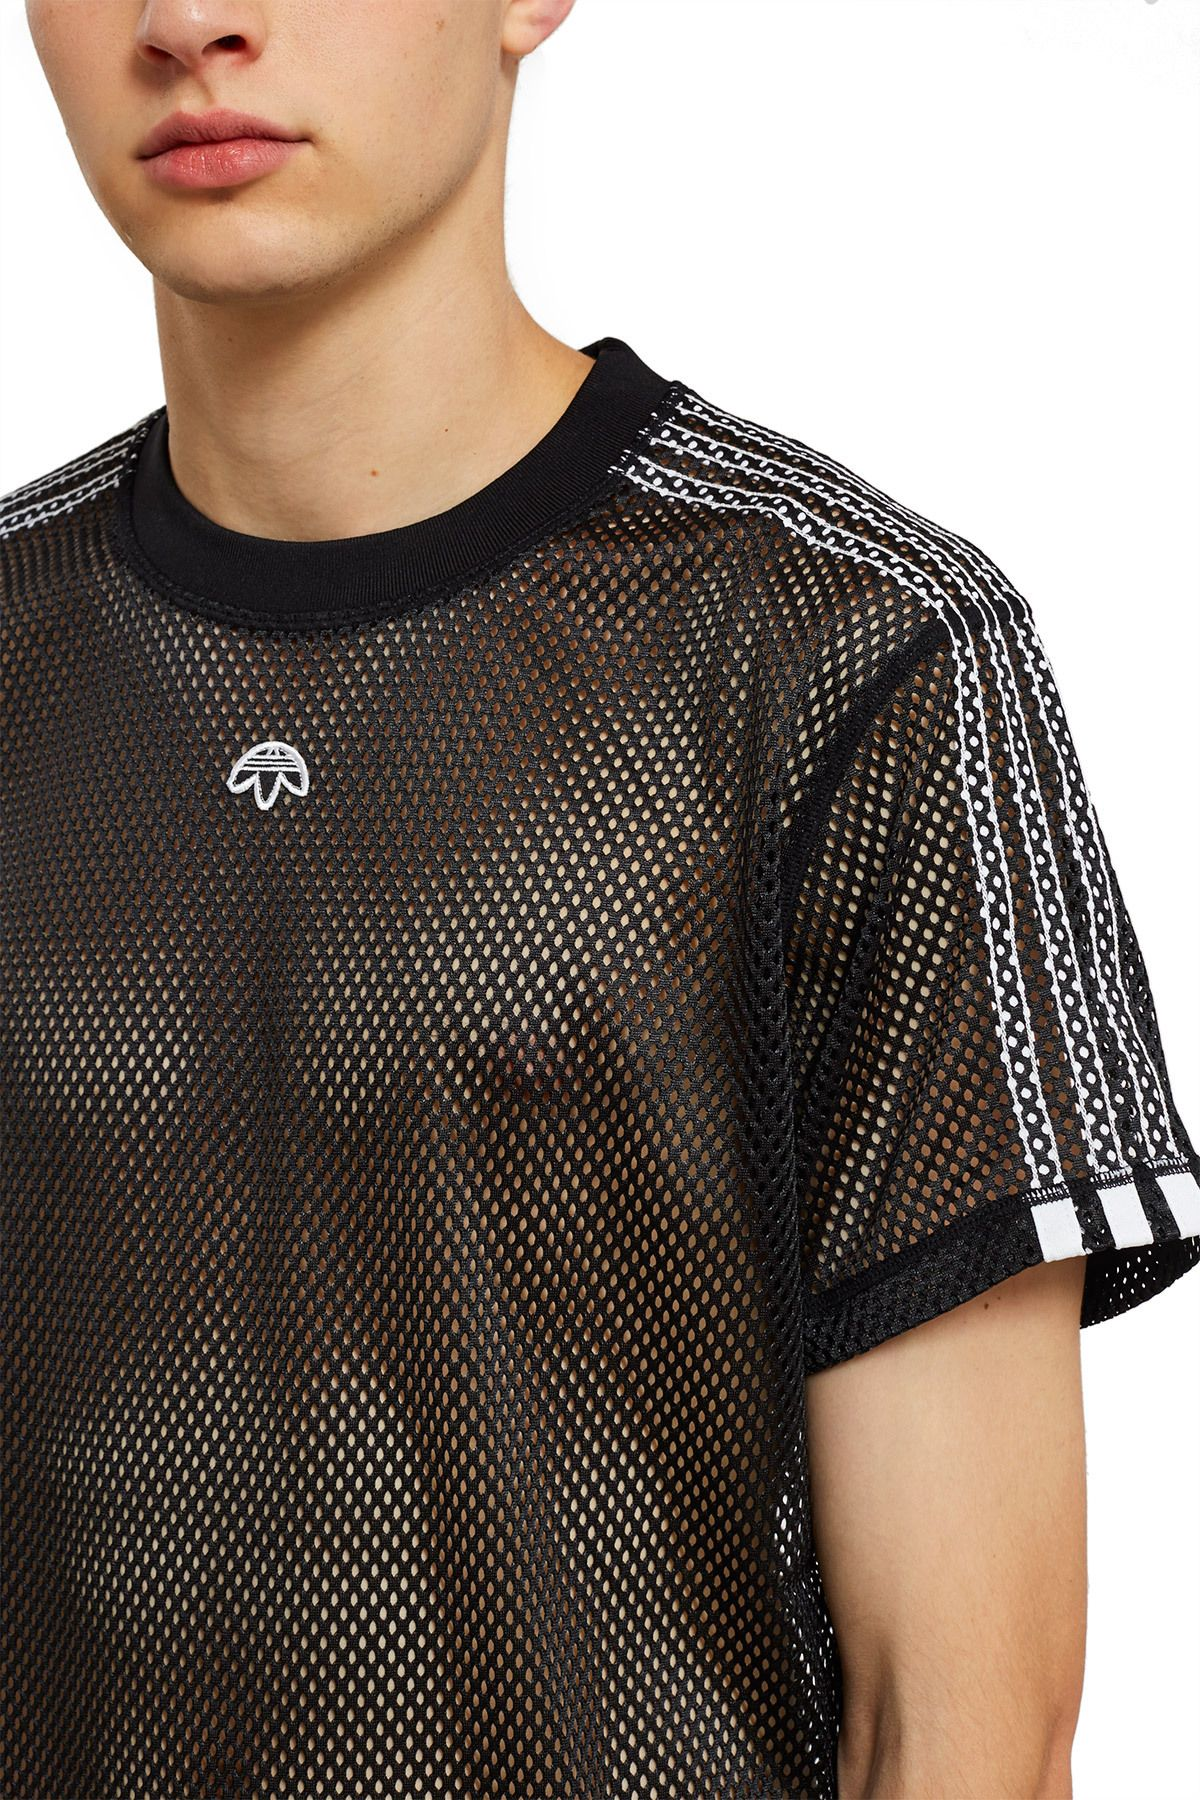 7f47c6fc60a39 adidas Originals by Alexander Wang, Mesh Tee Season 2 of adidas Originals  by Alexander Wang is inspired by the culture of New York City bike  messengers, ...